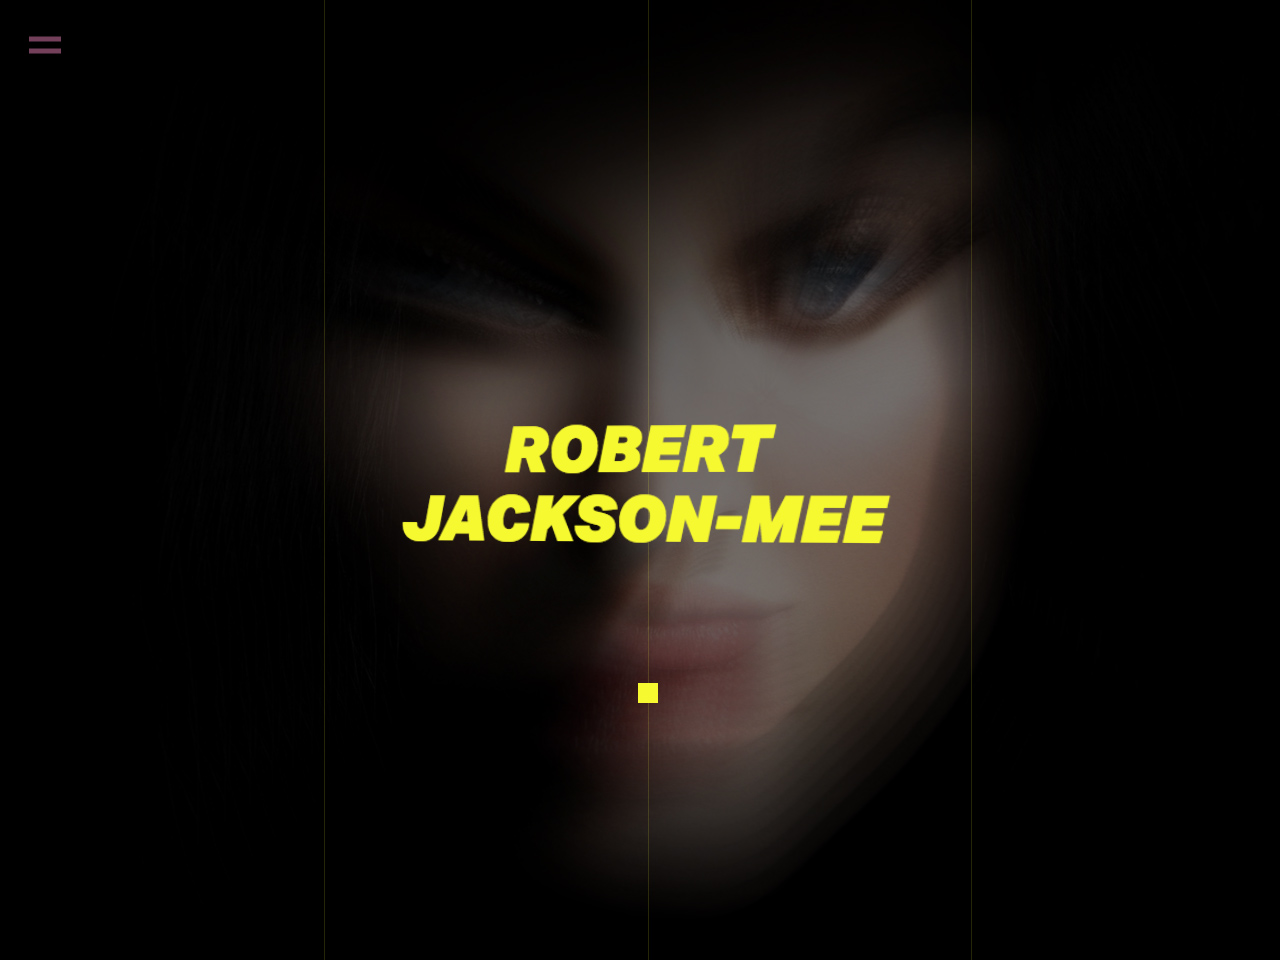 Robert Jackson-Mee | International Photographer